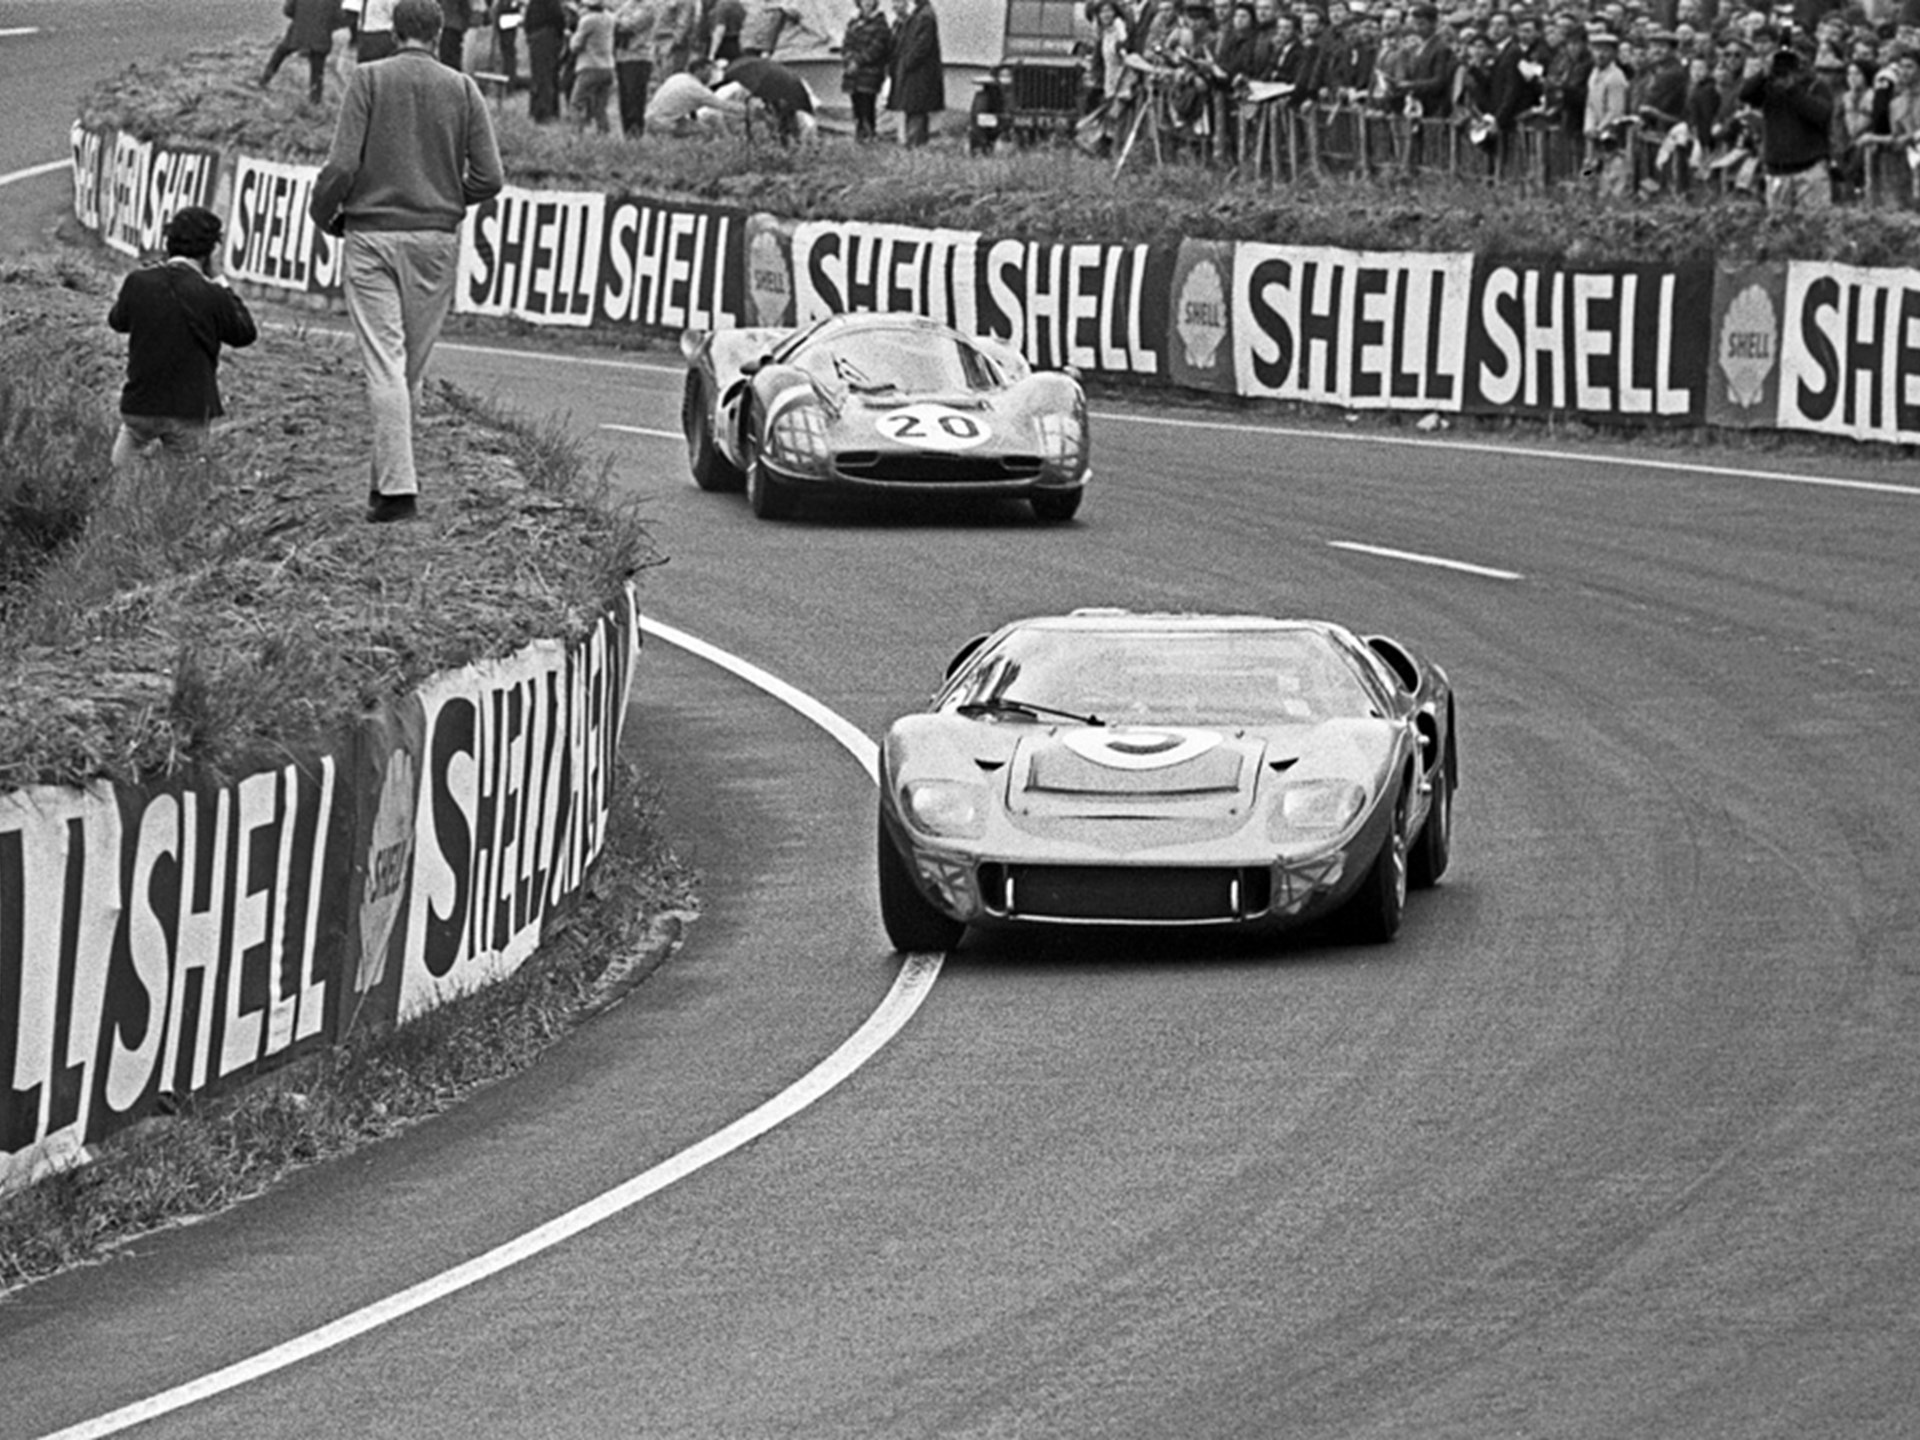 GT40 P/1016 rounds the Esses at Le Mans in 1966.